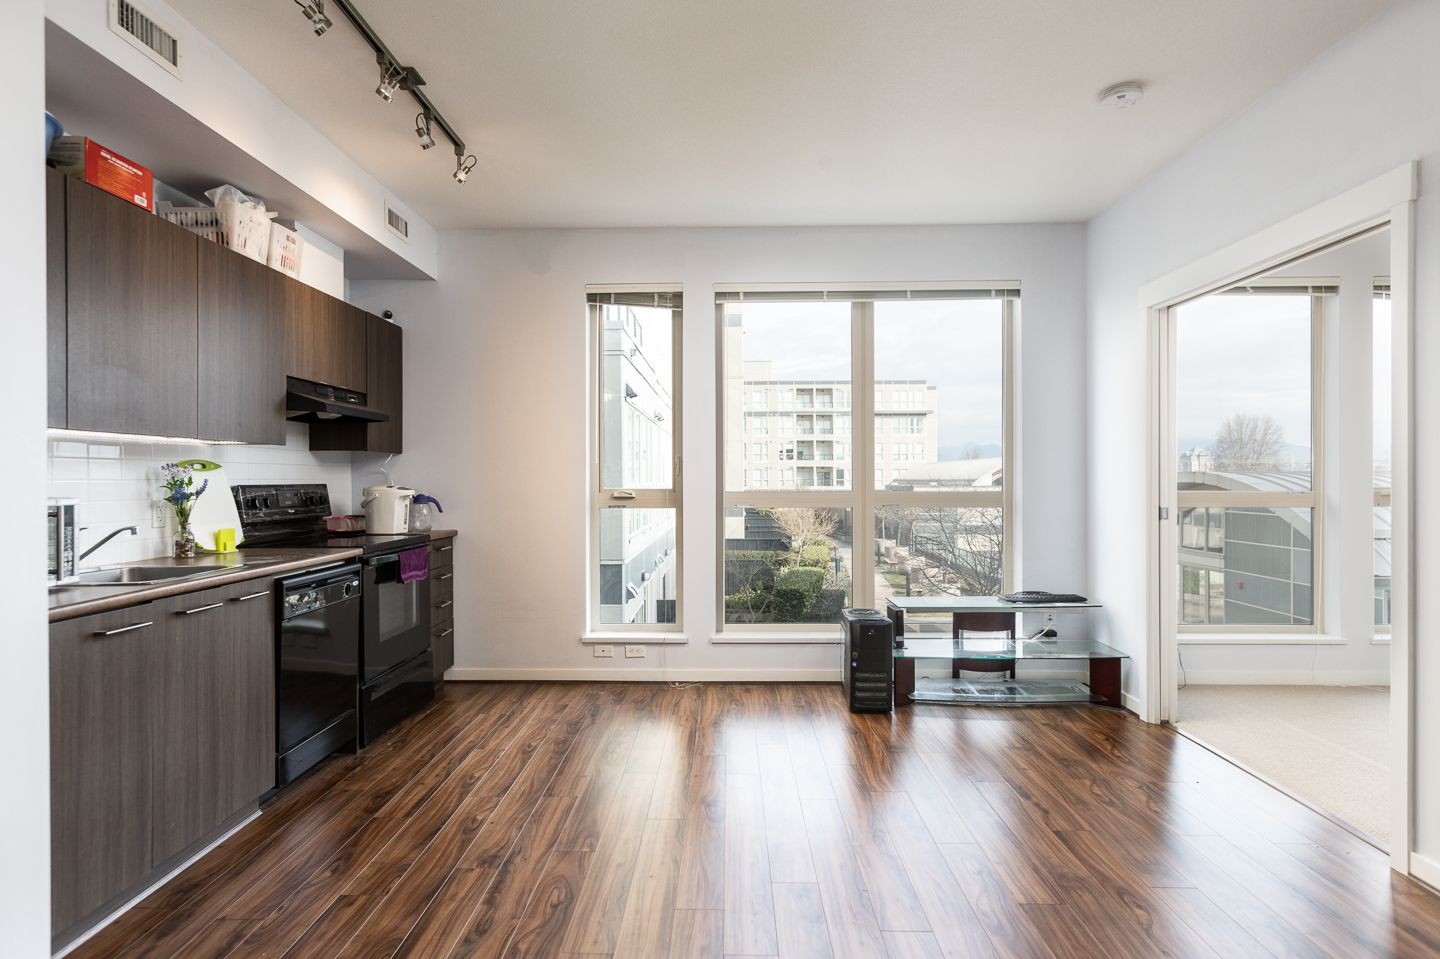 """Photo 3: Photos: 398 4133 STOLBERG Street in Richmond: West Cambie Condo for sale in """"REMY"""" : MLS®# R2346202"""